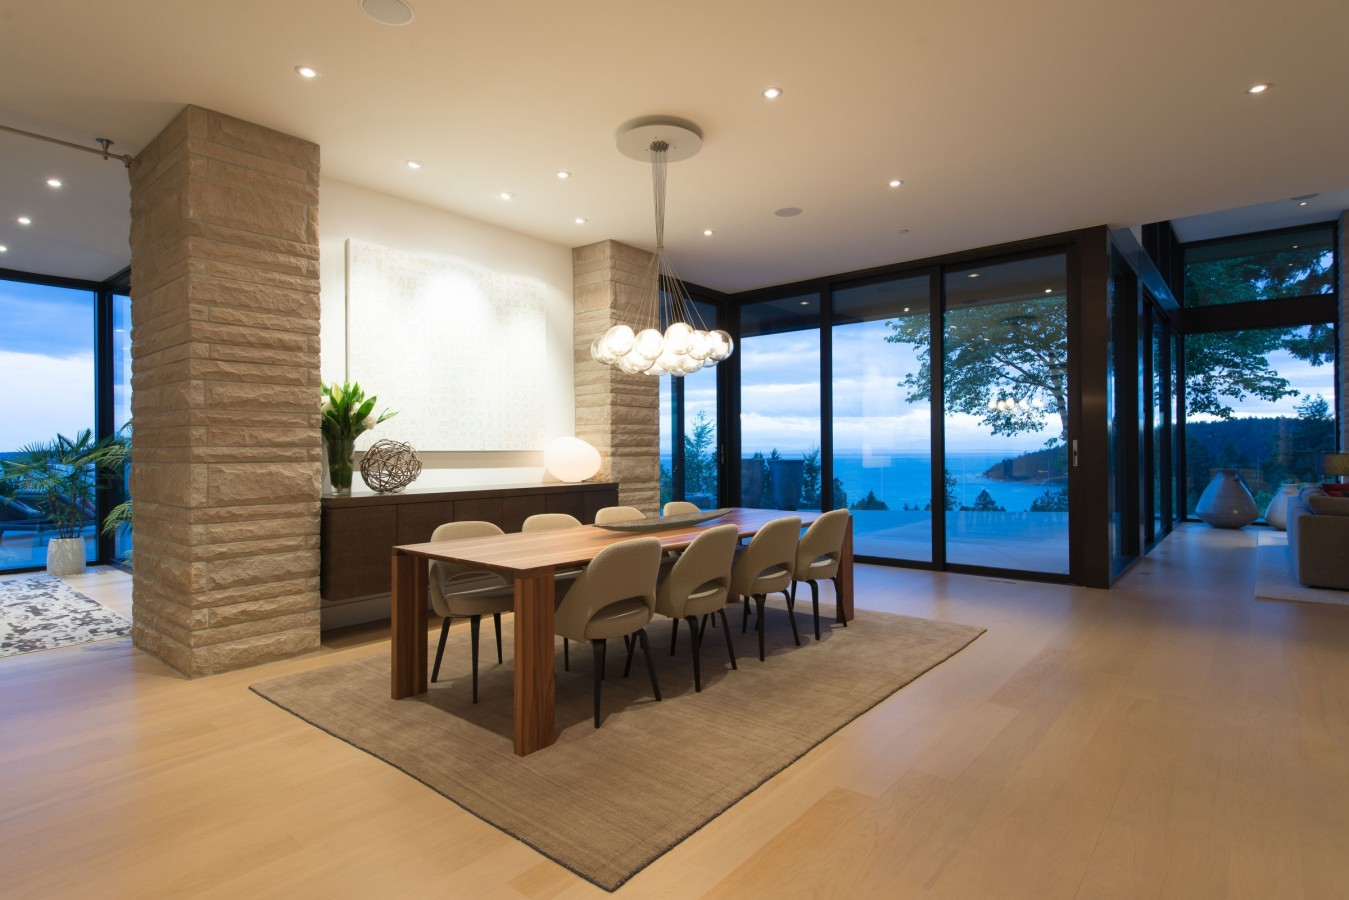 Burkehill Residence By Craig Chevalier And Raven Inside